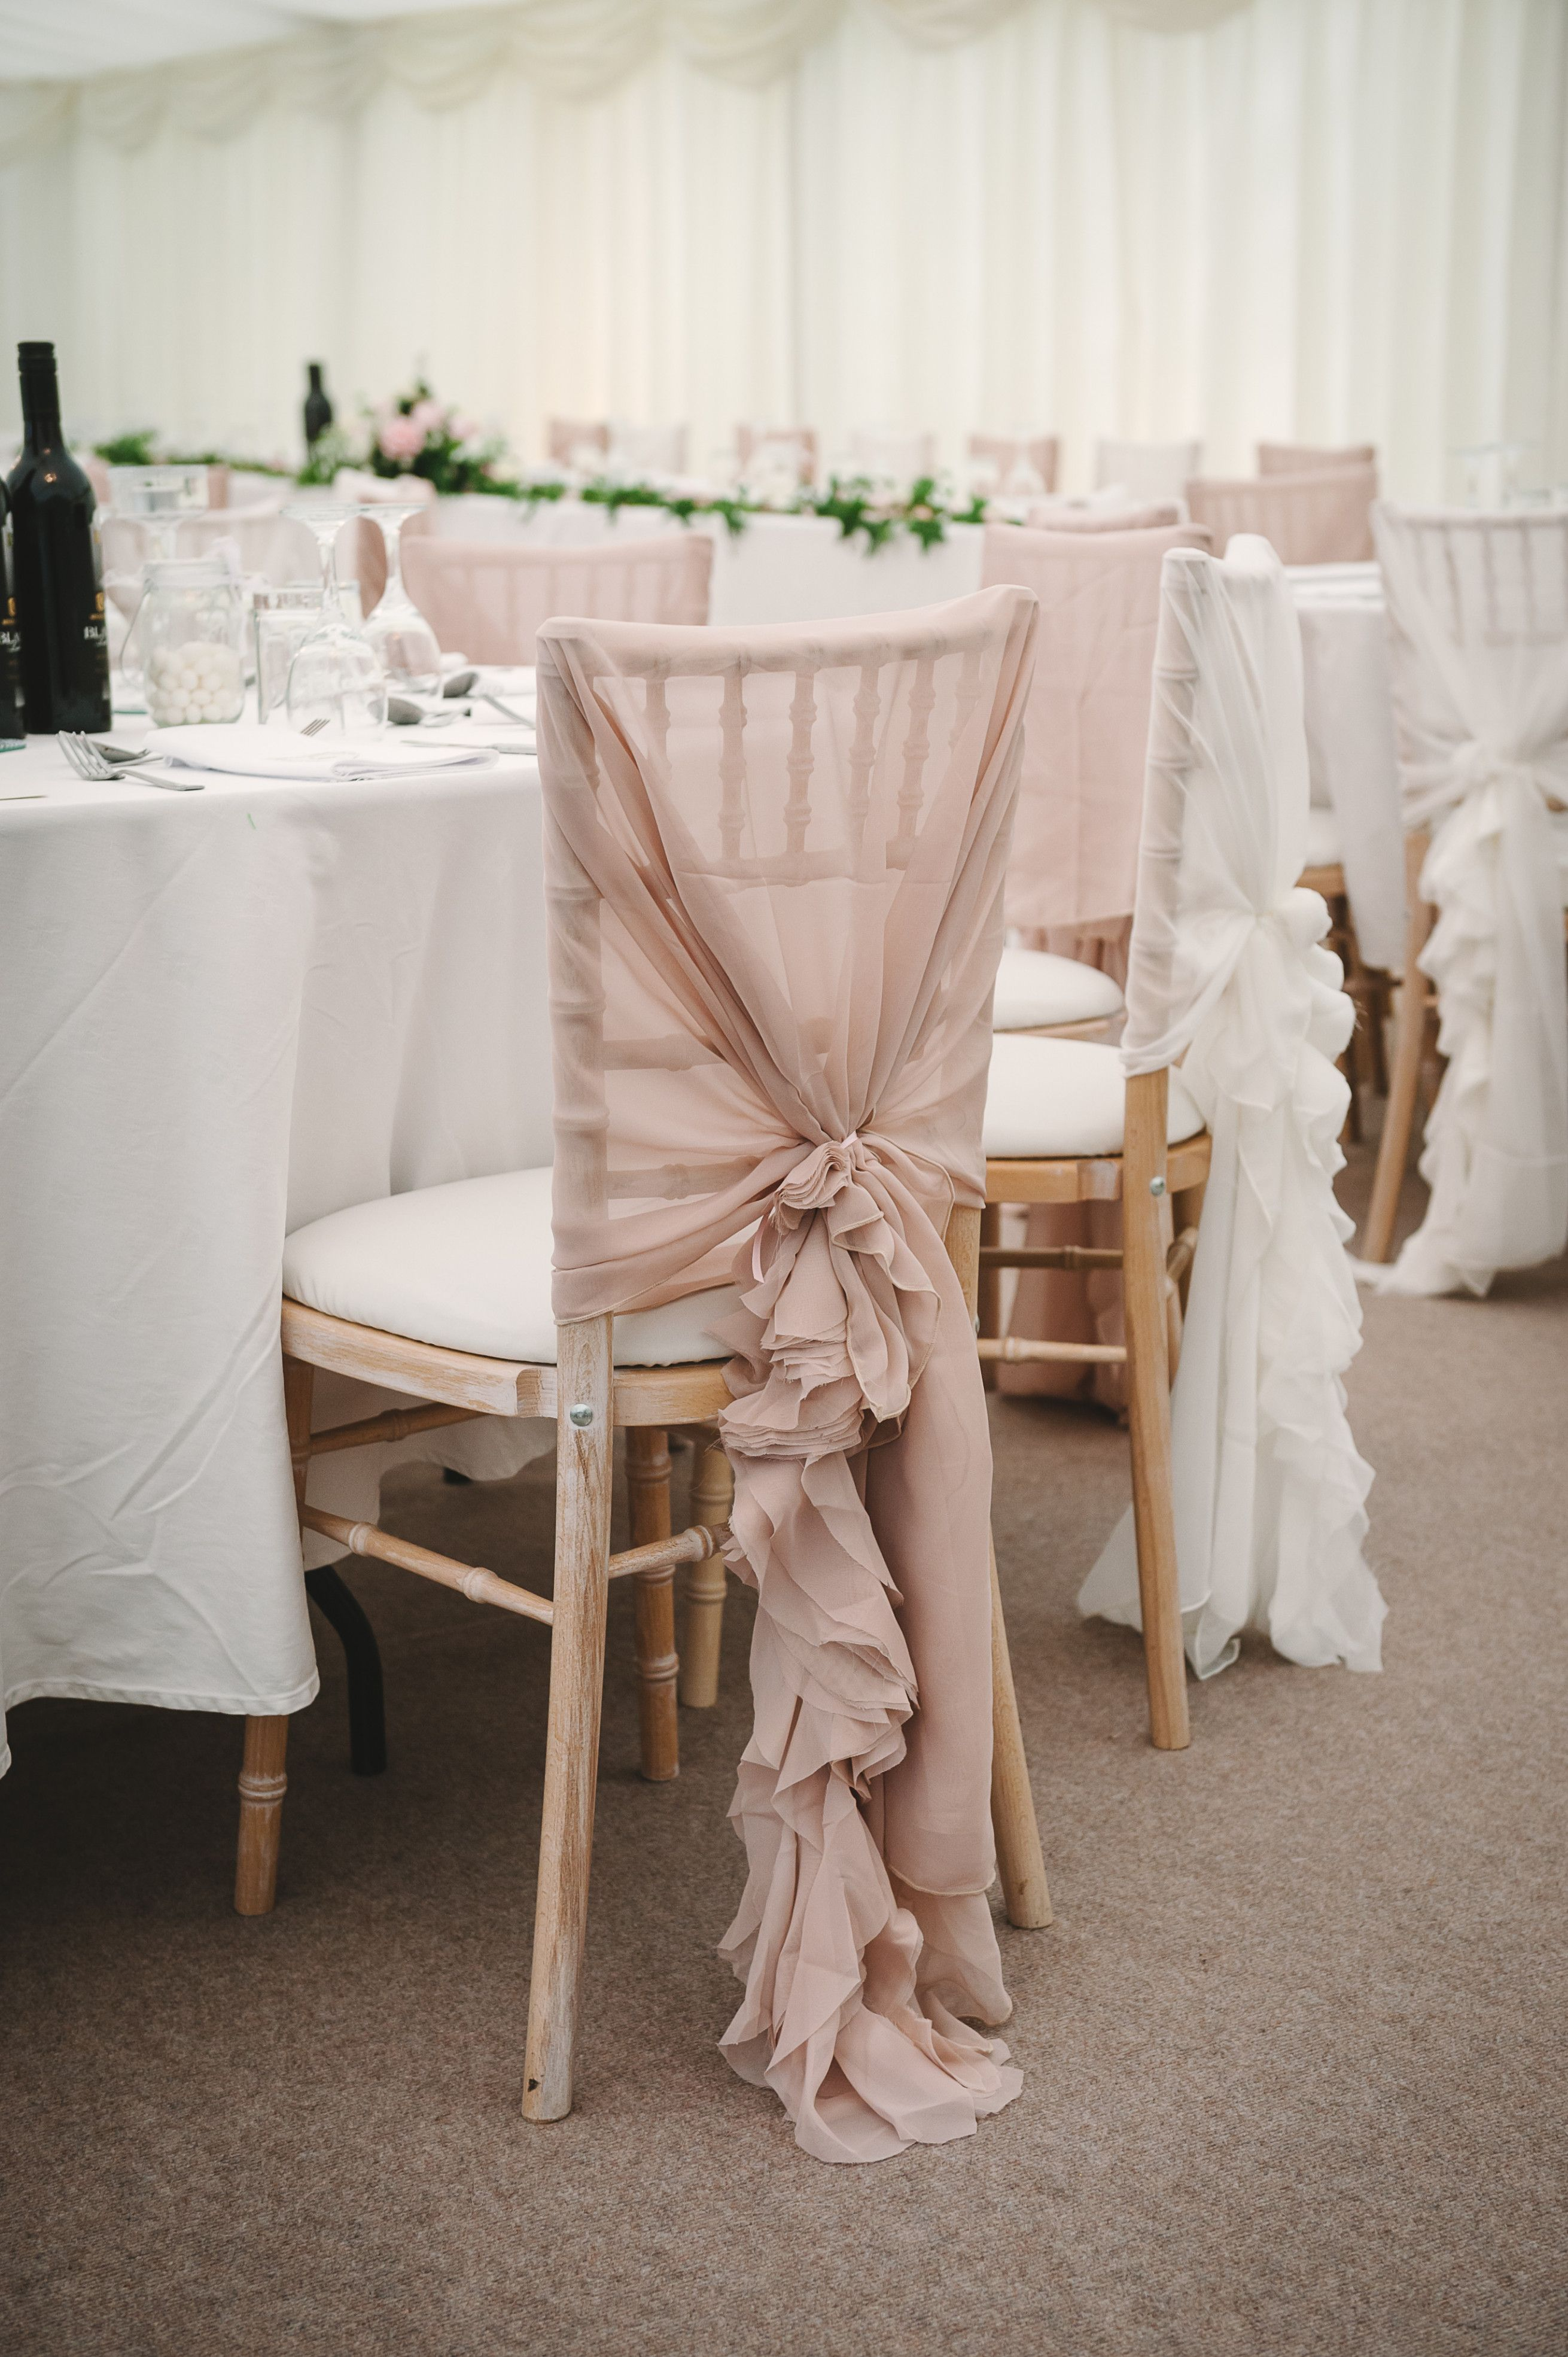 What You Should Wear To Chair Covers For Wedding Cheap In 2020